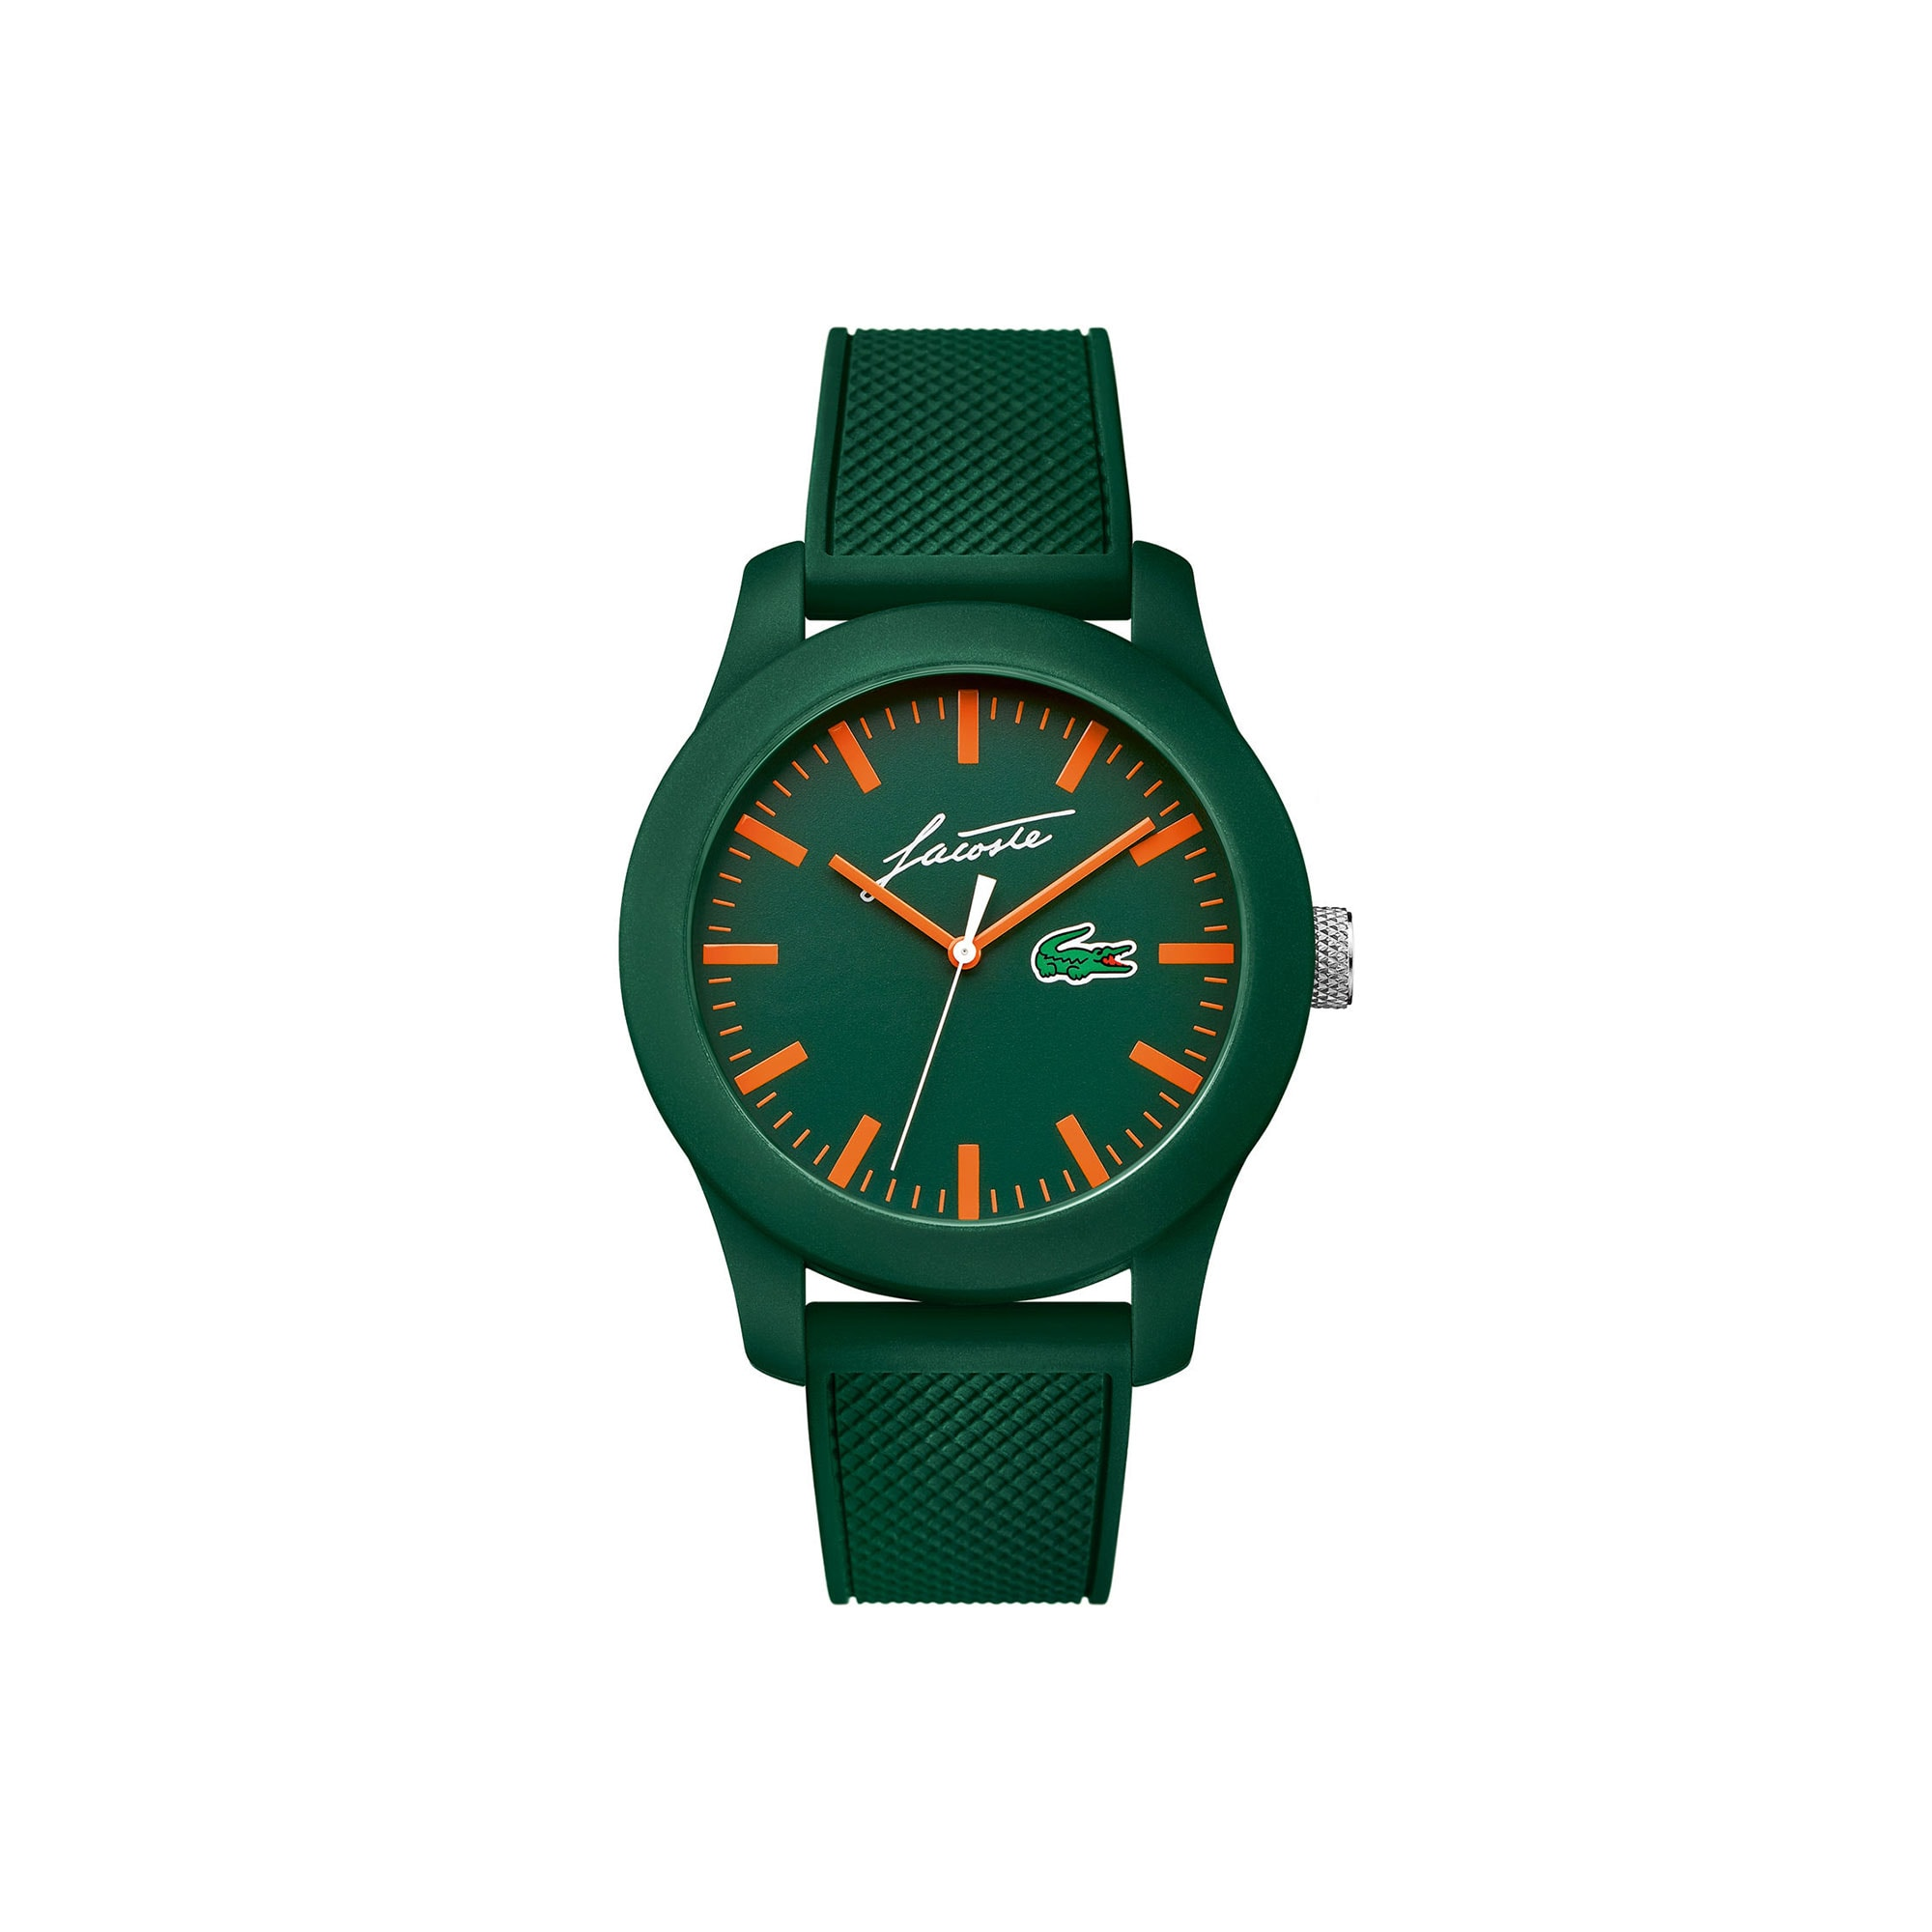 Lacoste 12.12 watch with green silicone strap and René Lacoste signature